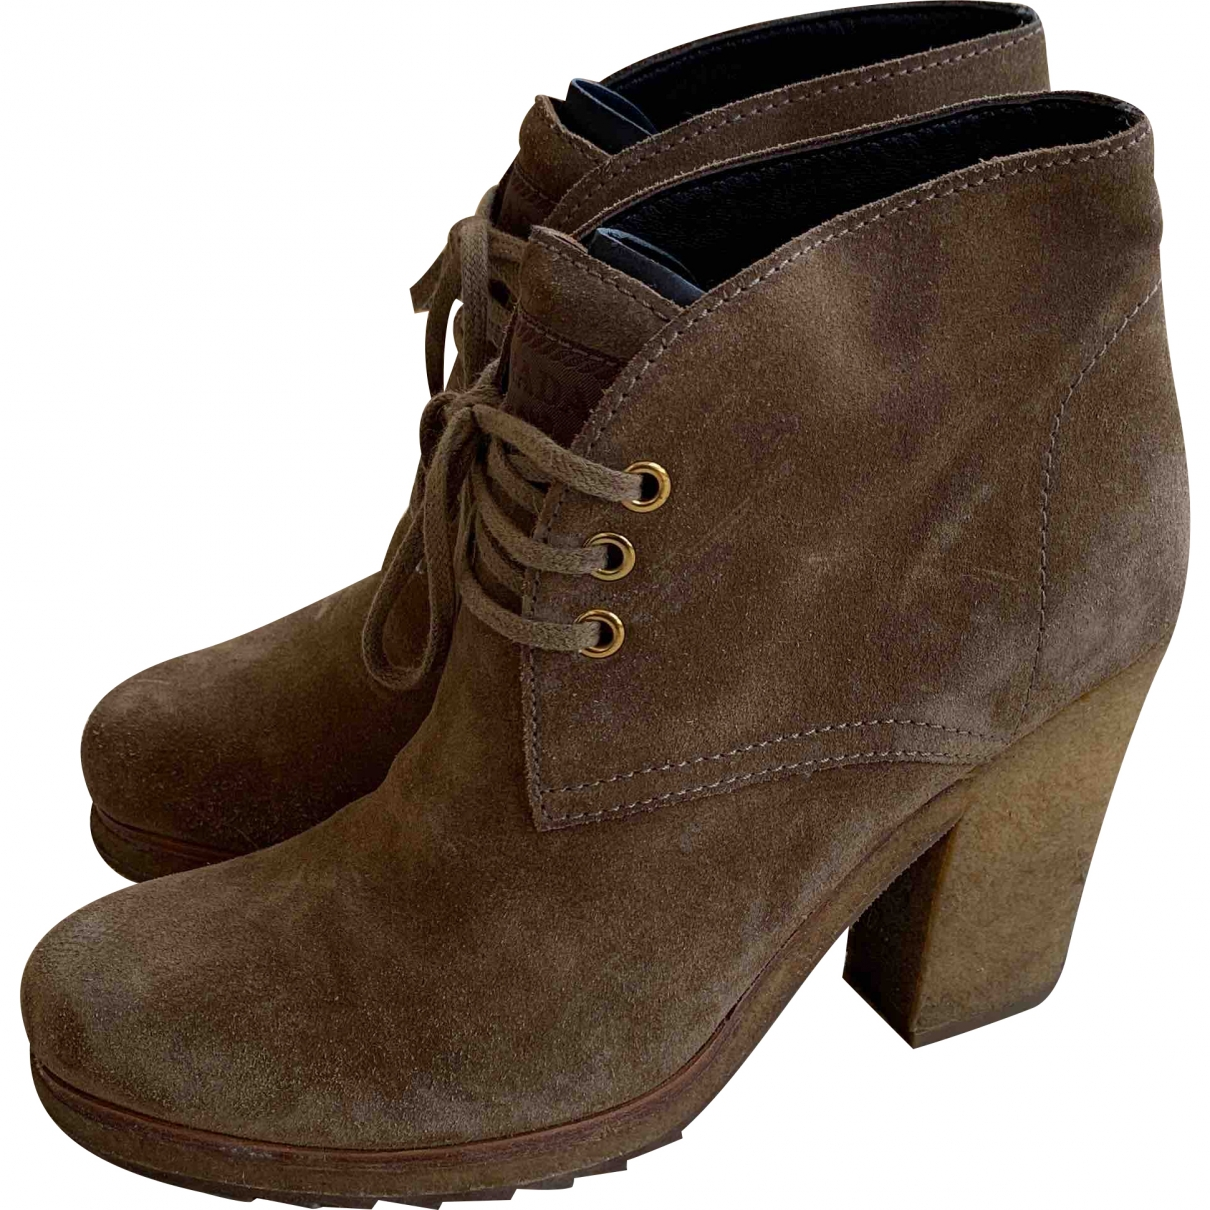 Prada \N Brown Suede Ankle boots for Women 36 EU